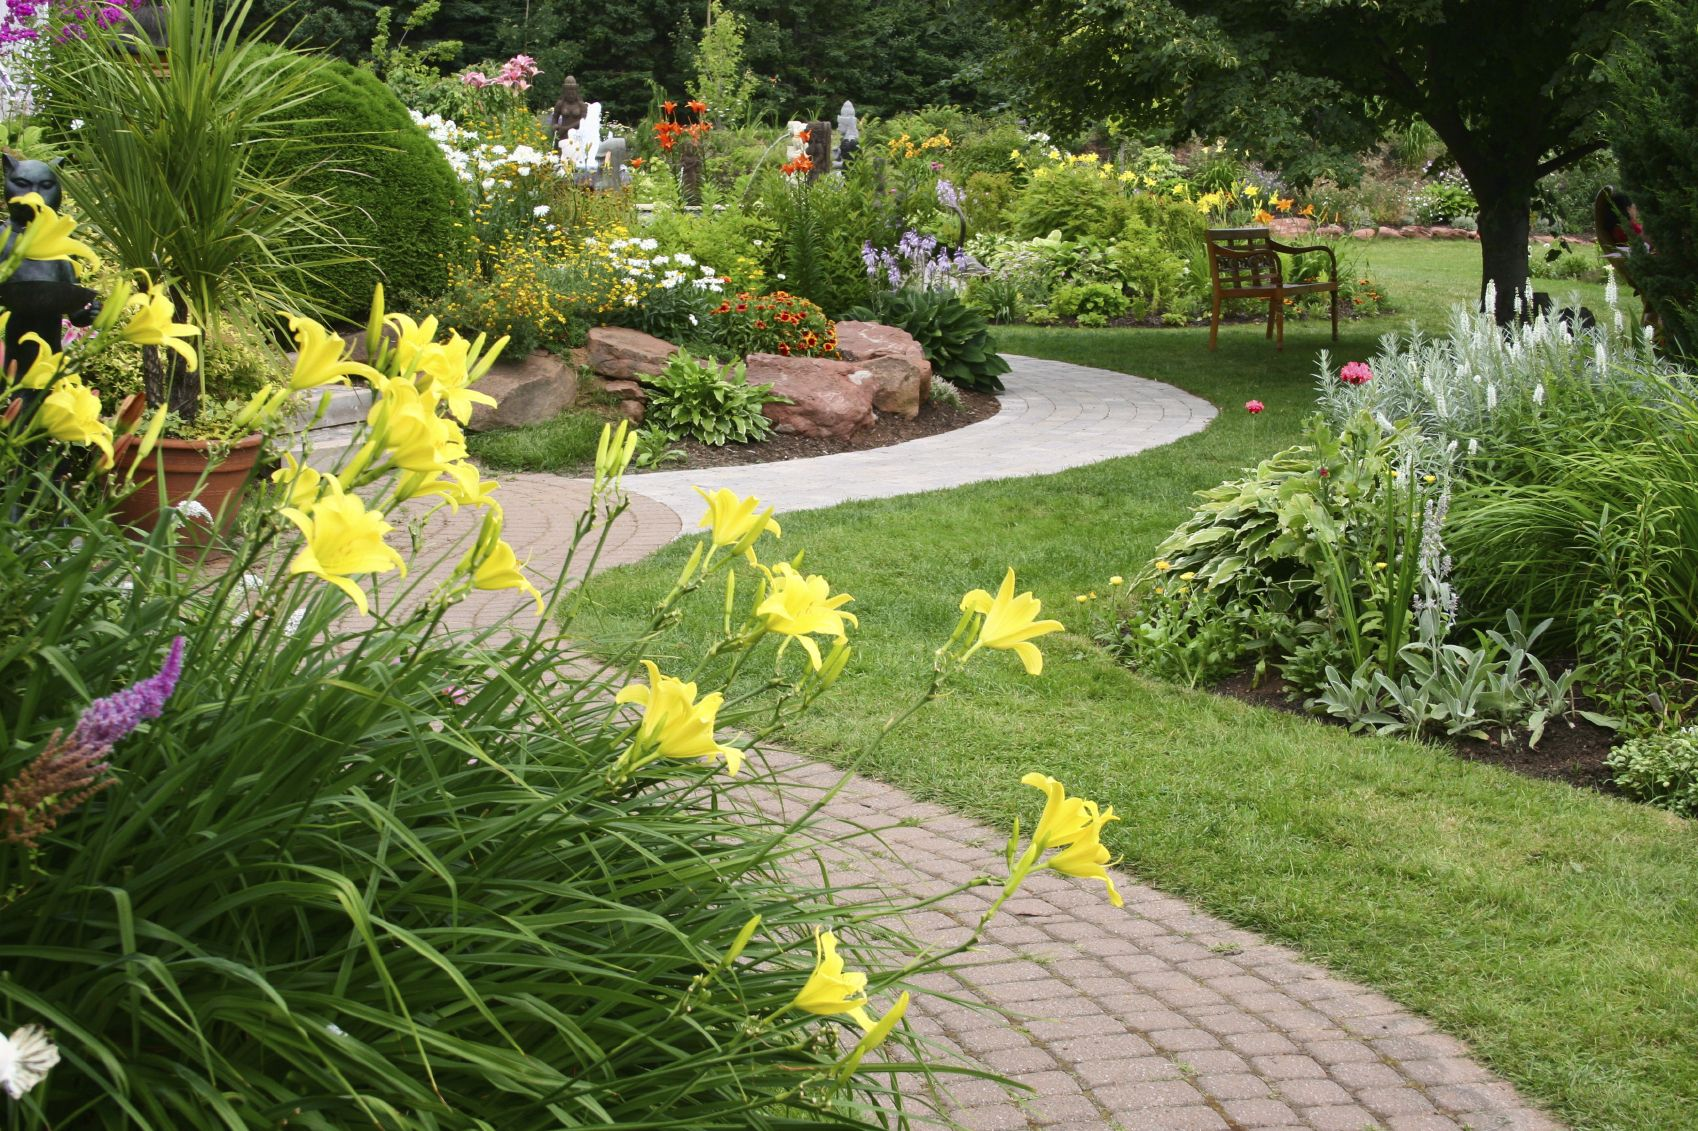 Landscape Design | Landscaping Services in California | Landscape Design & Landscaping ...